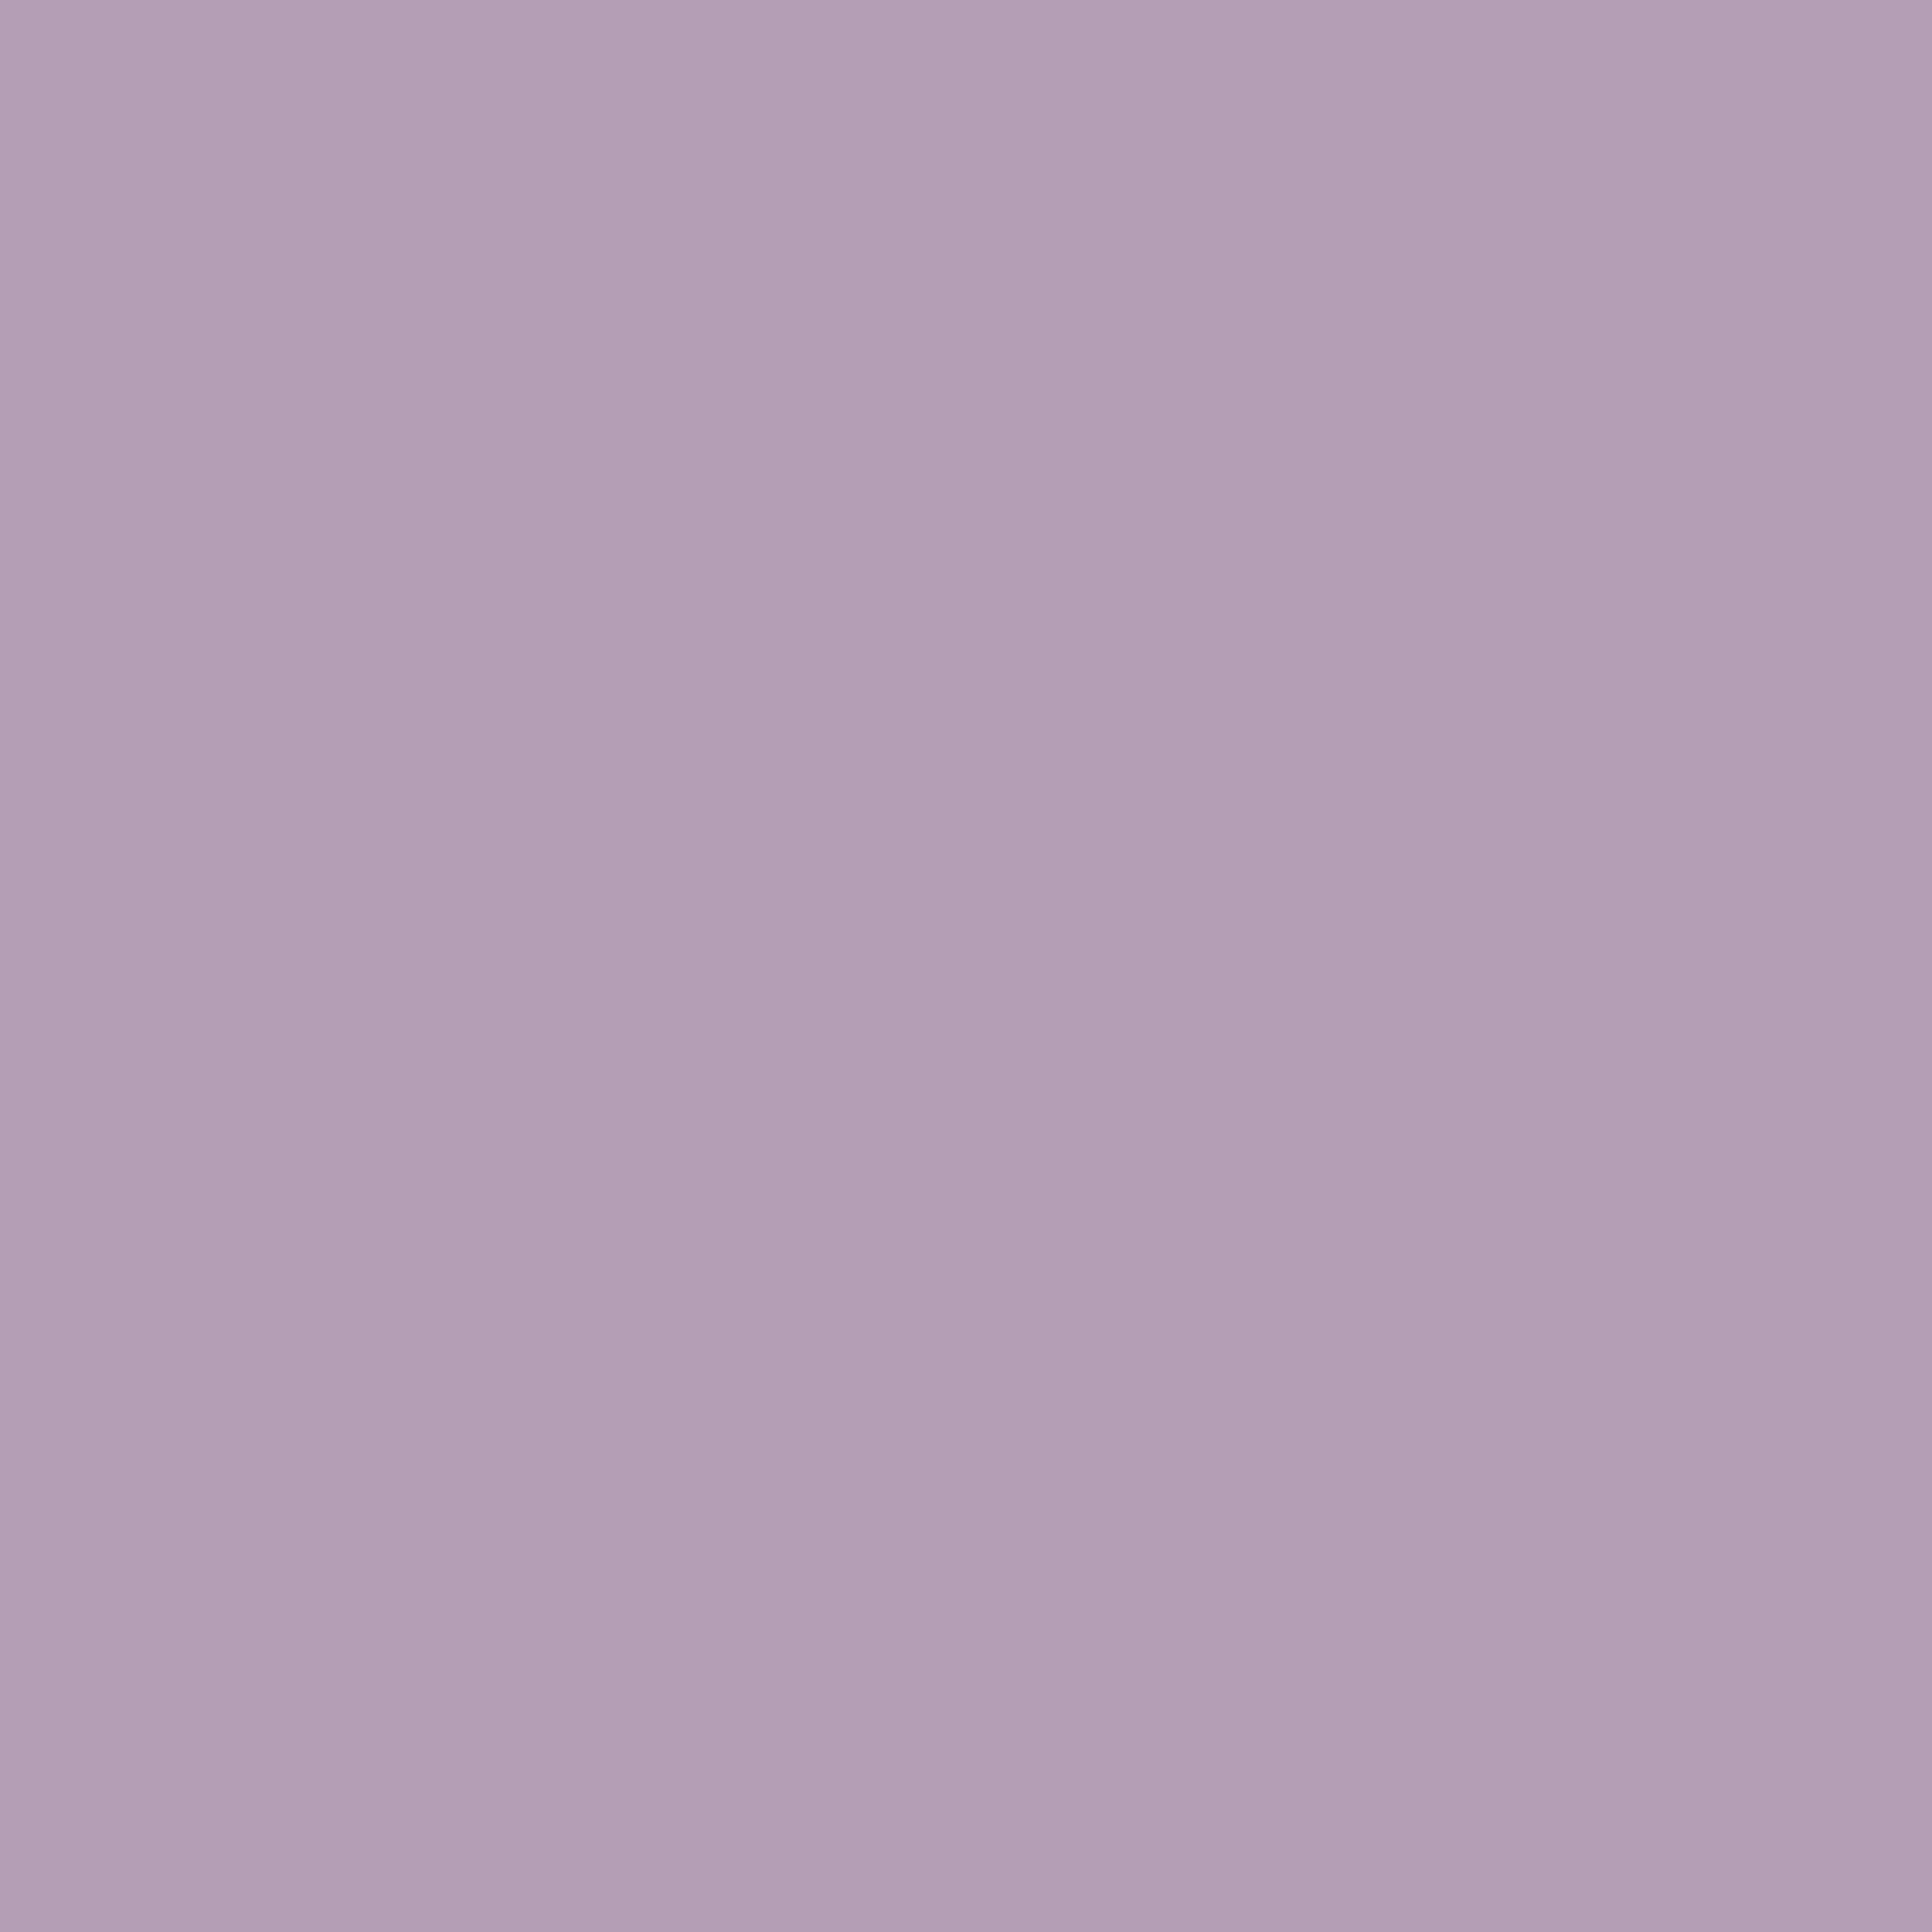 2048x2048 Pastel Purple Solid Color Background